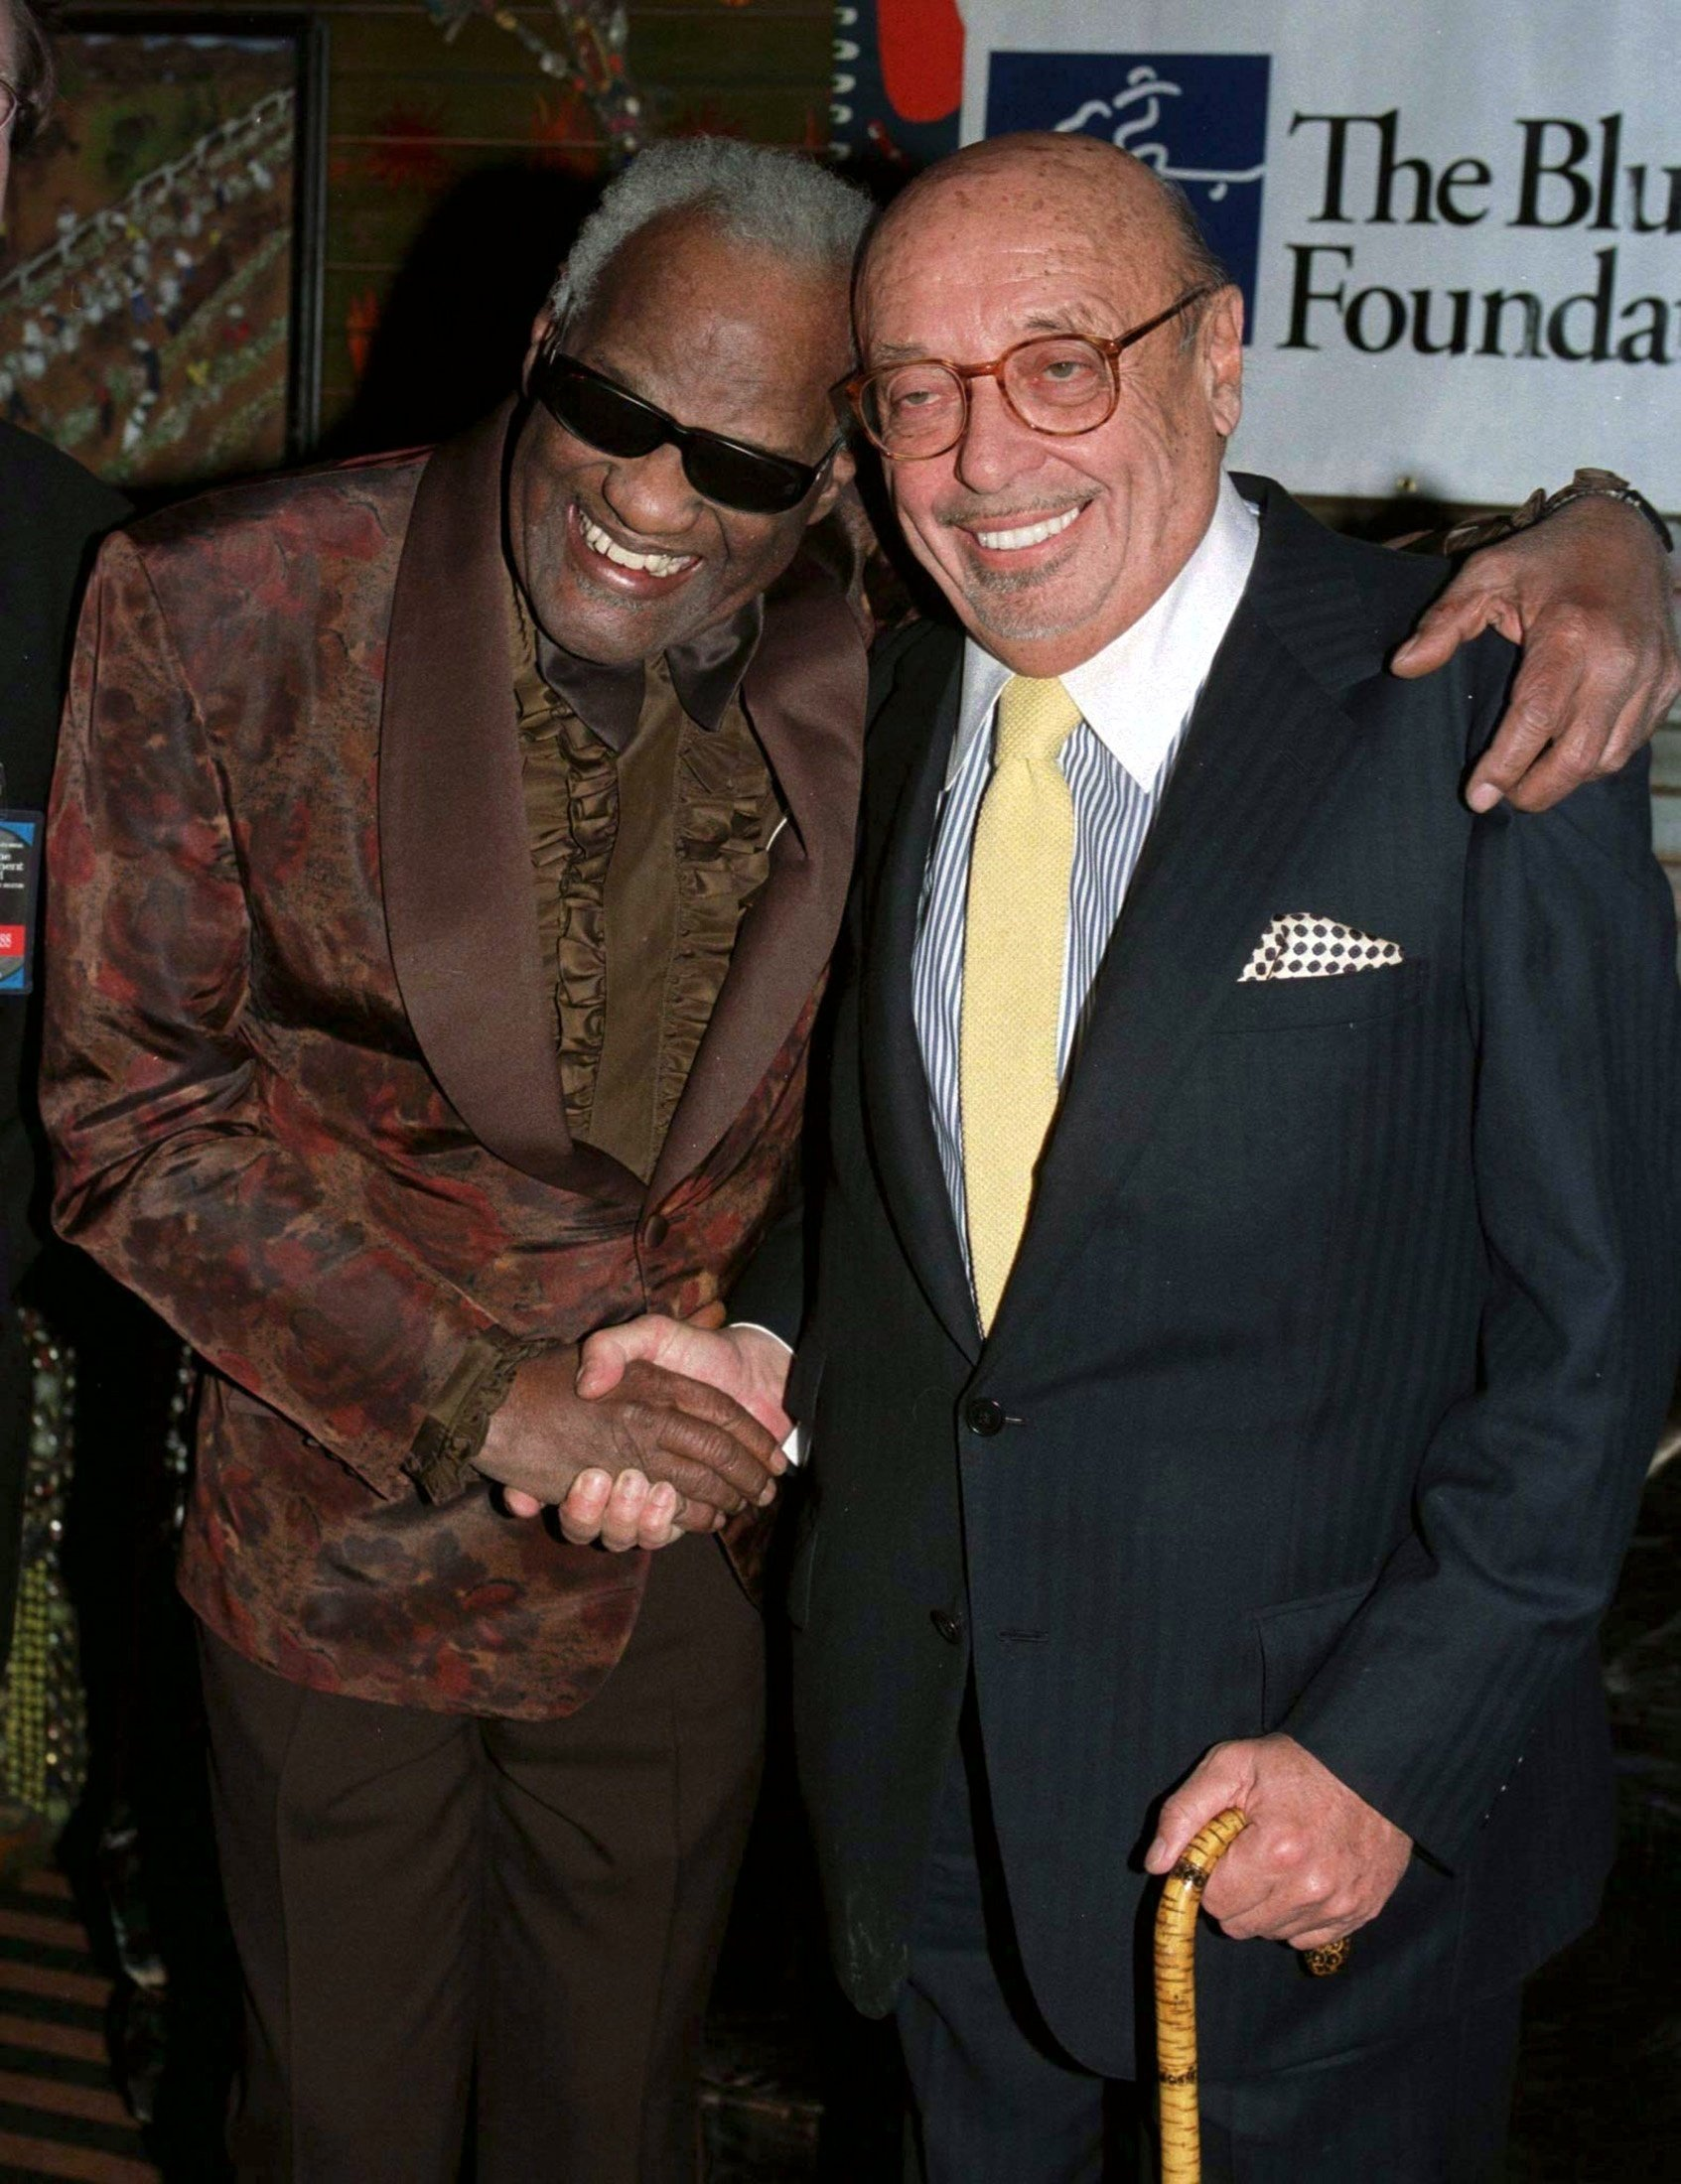 Ray Charles and Ahmet Ertegun posing backstage at Blues Foundation event in West Hollywood in this undated photo. (REUTERS PHOTO)